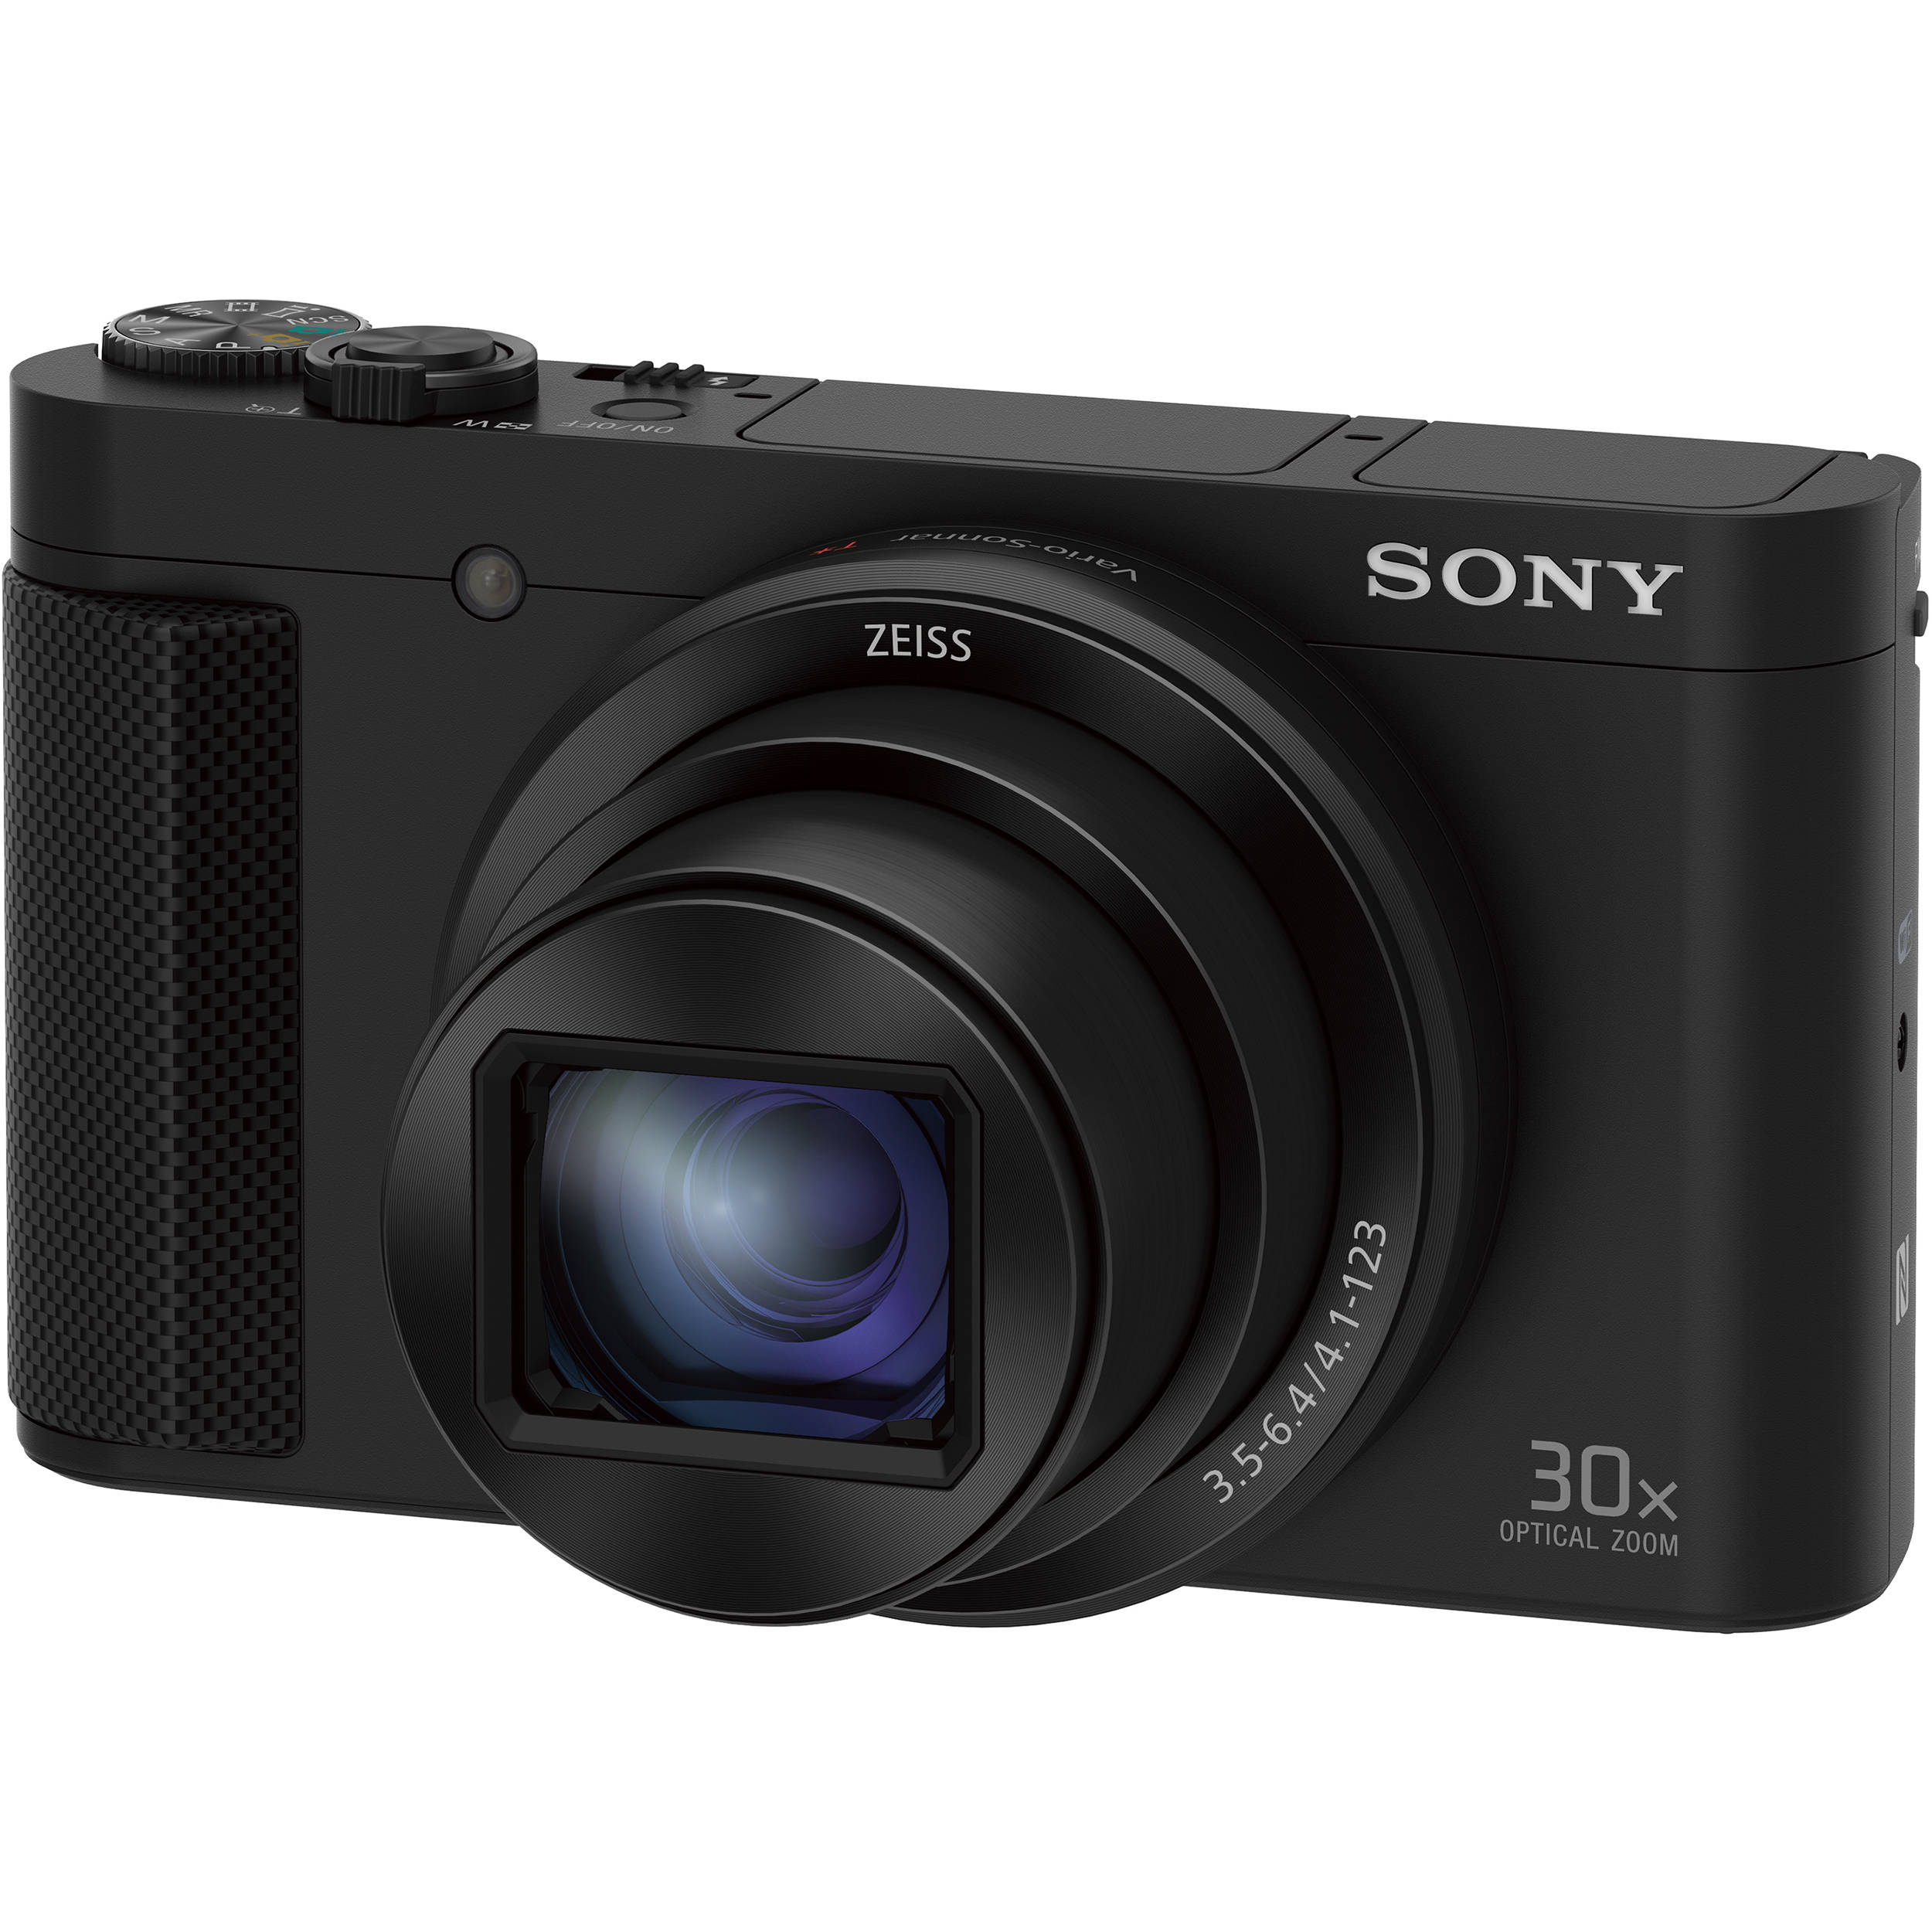 sony cyber shot_Sony Cyber-shot DSC-HX80 Digital Camera DSCHX80/B BH Photo Video